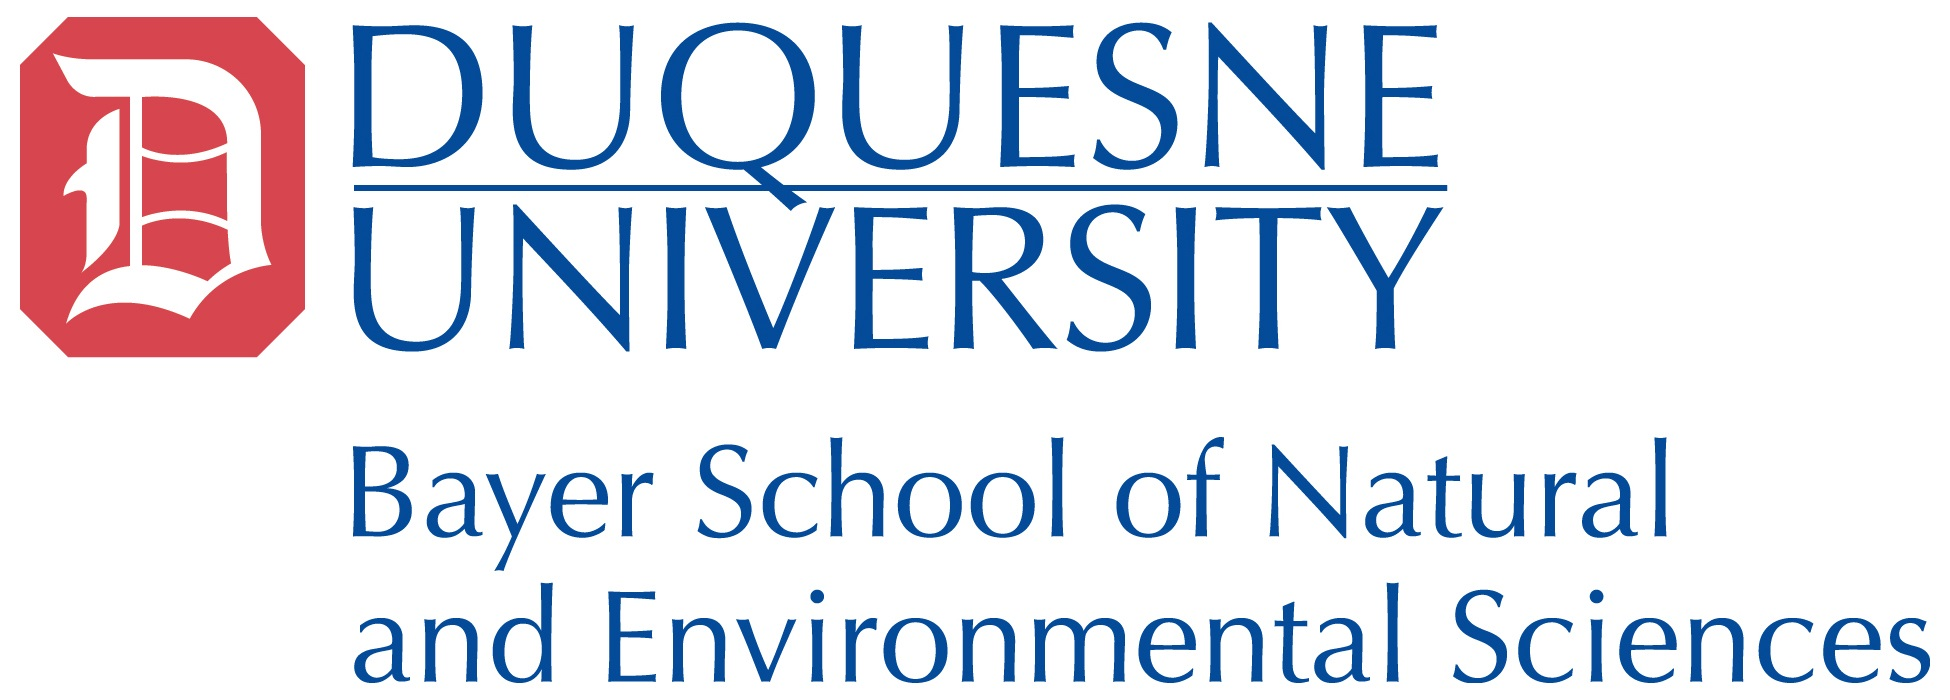 Duquesne University Bayer School of Natural and Environmental Sciences